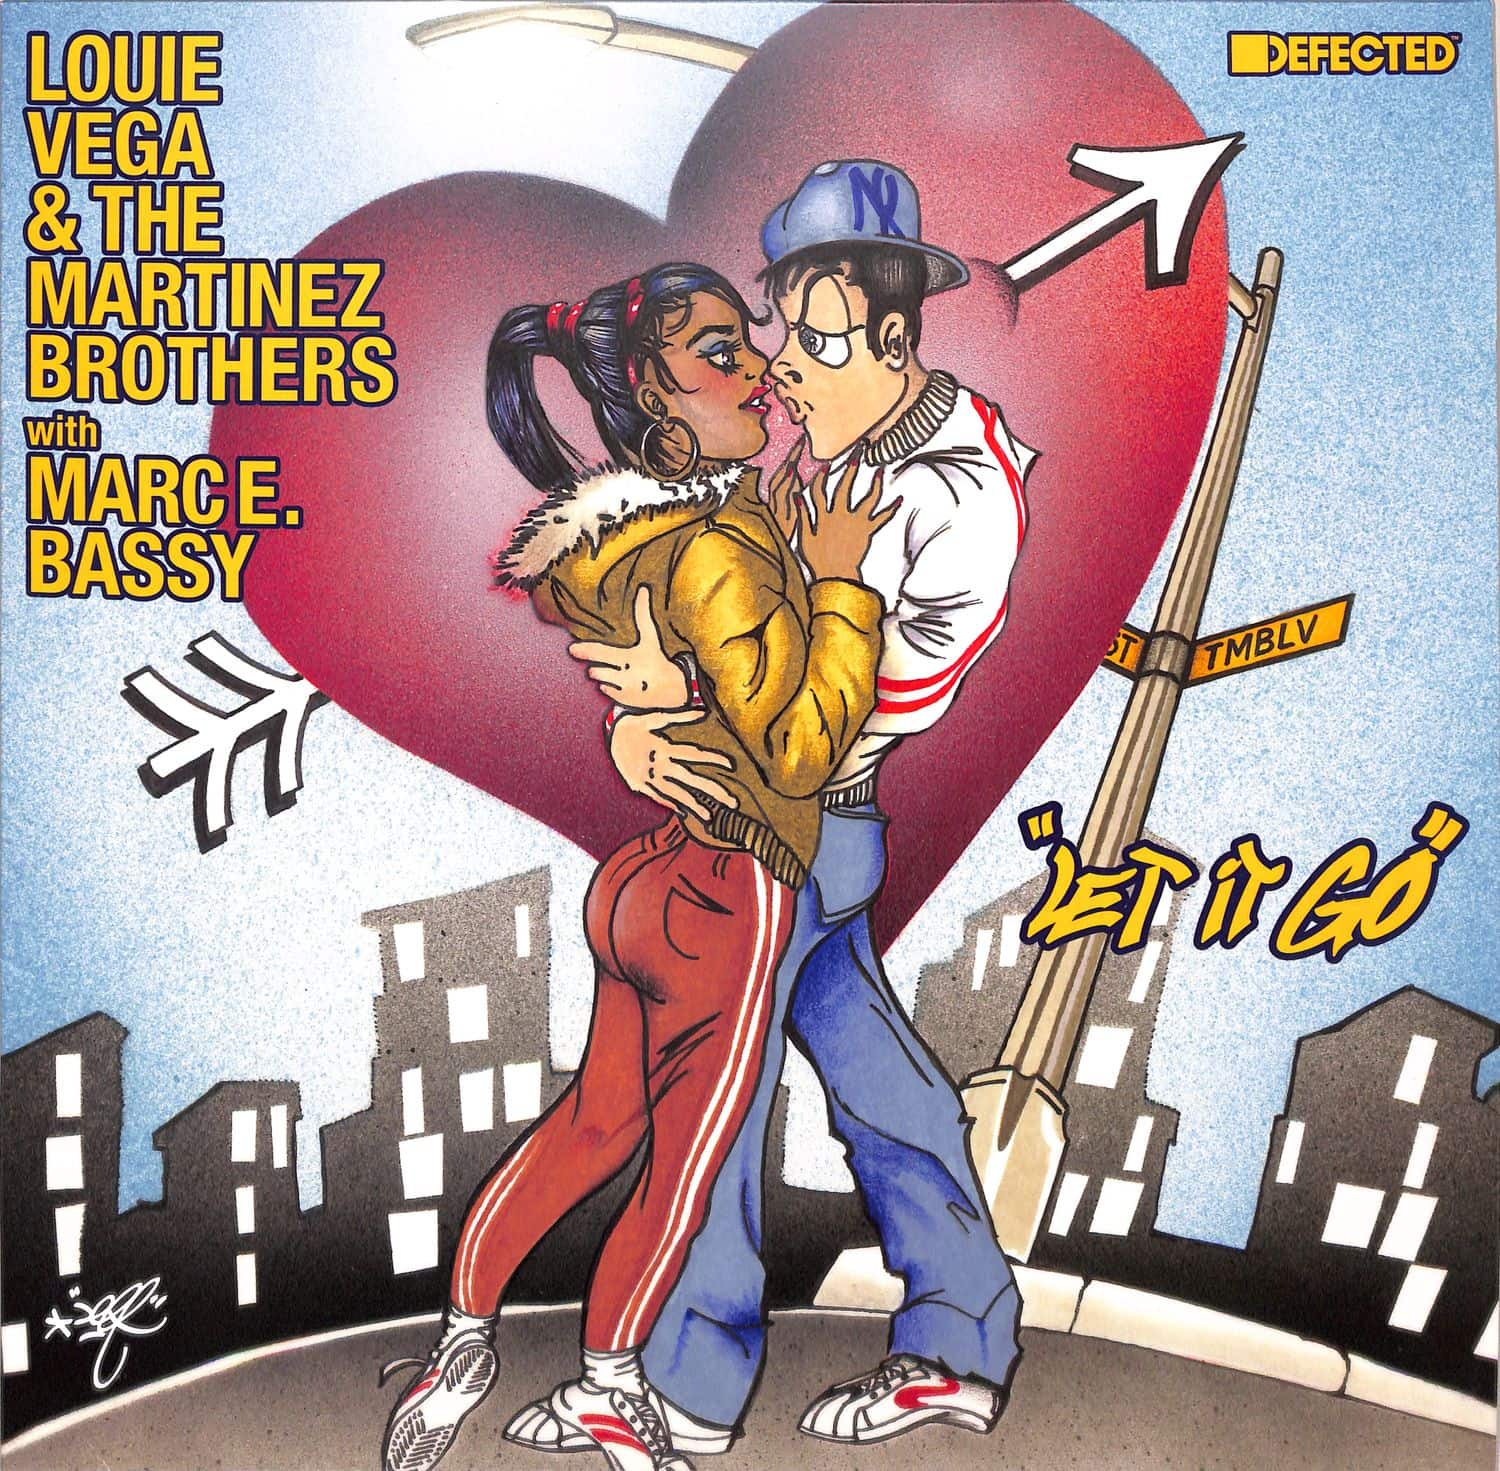 Louie Vega & The Martinez Brothers with Marc E. Bassy - LET IT GO